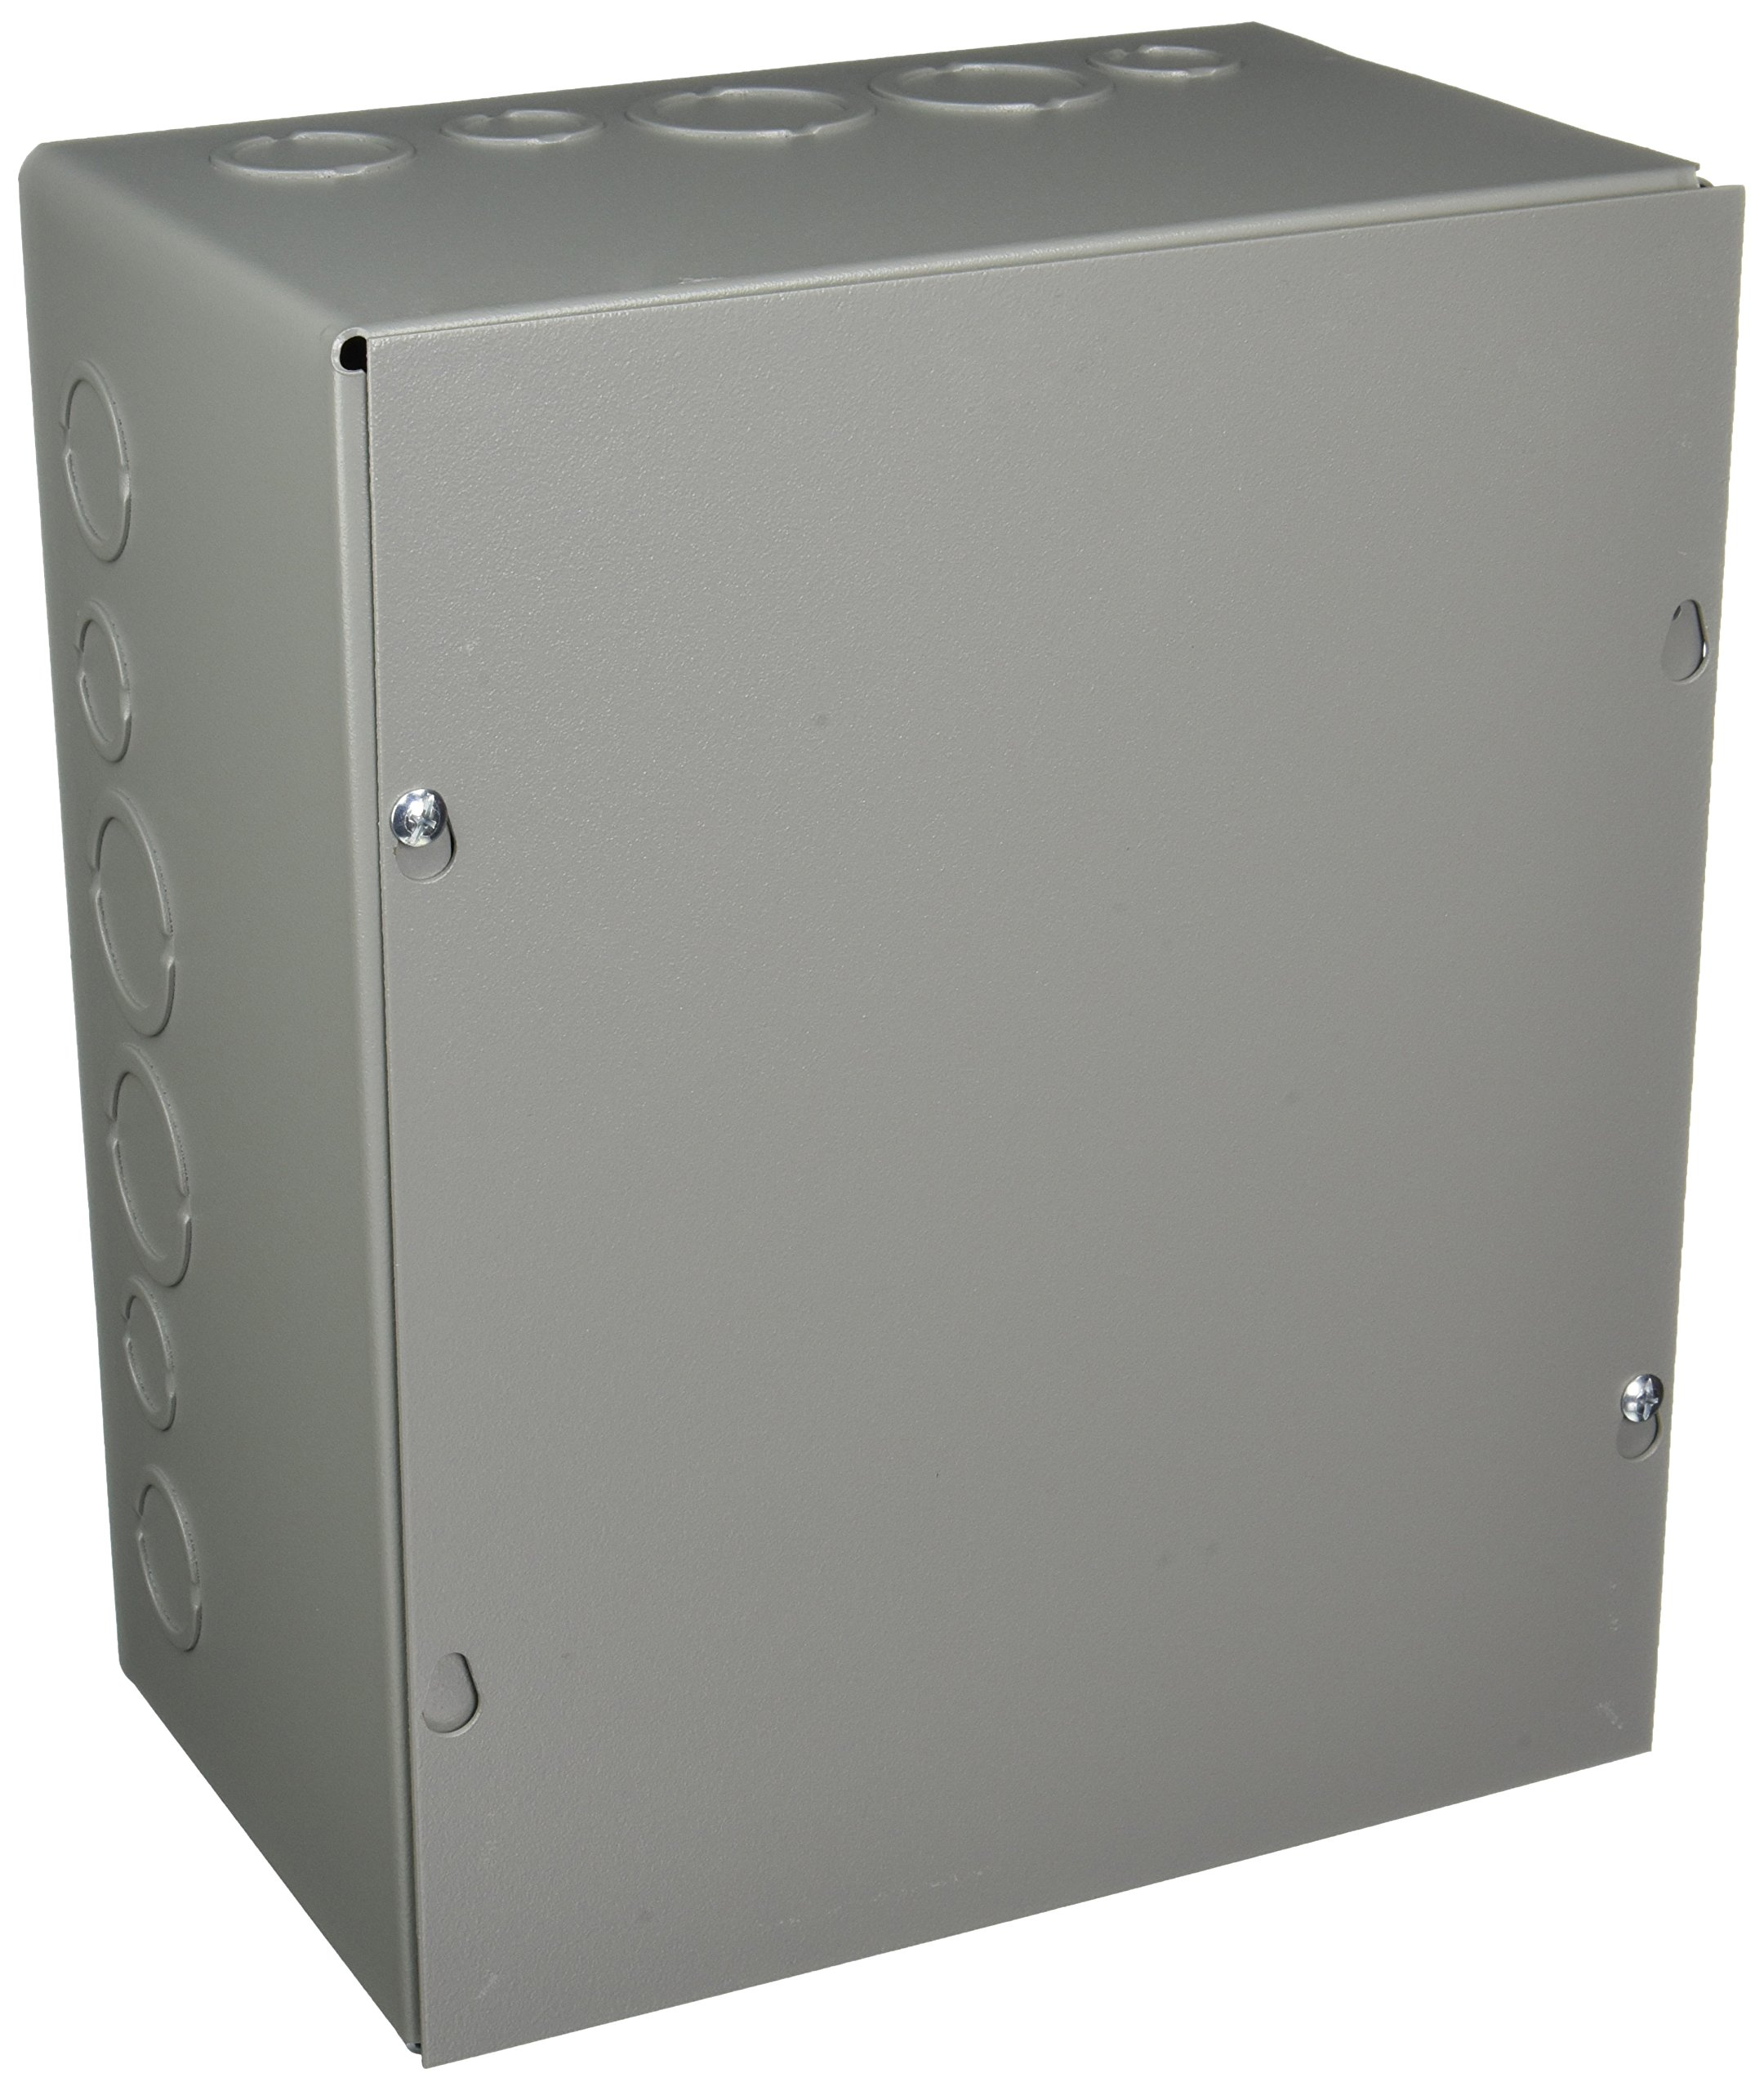 Wiegmann SC101206 SC-Series NEMA 1 Screw Cover Wallmount Pull Box with Knockouts, Painted Steel, 12'' x 10'' x 6''